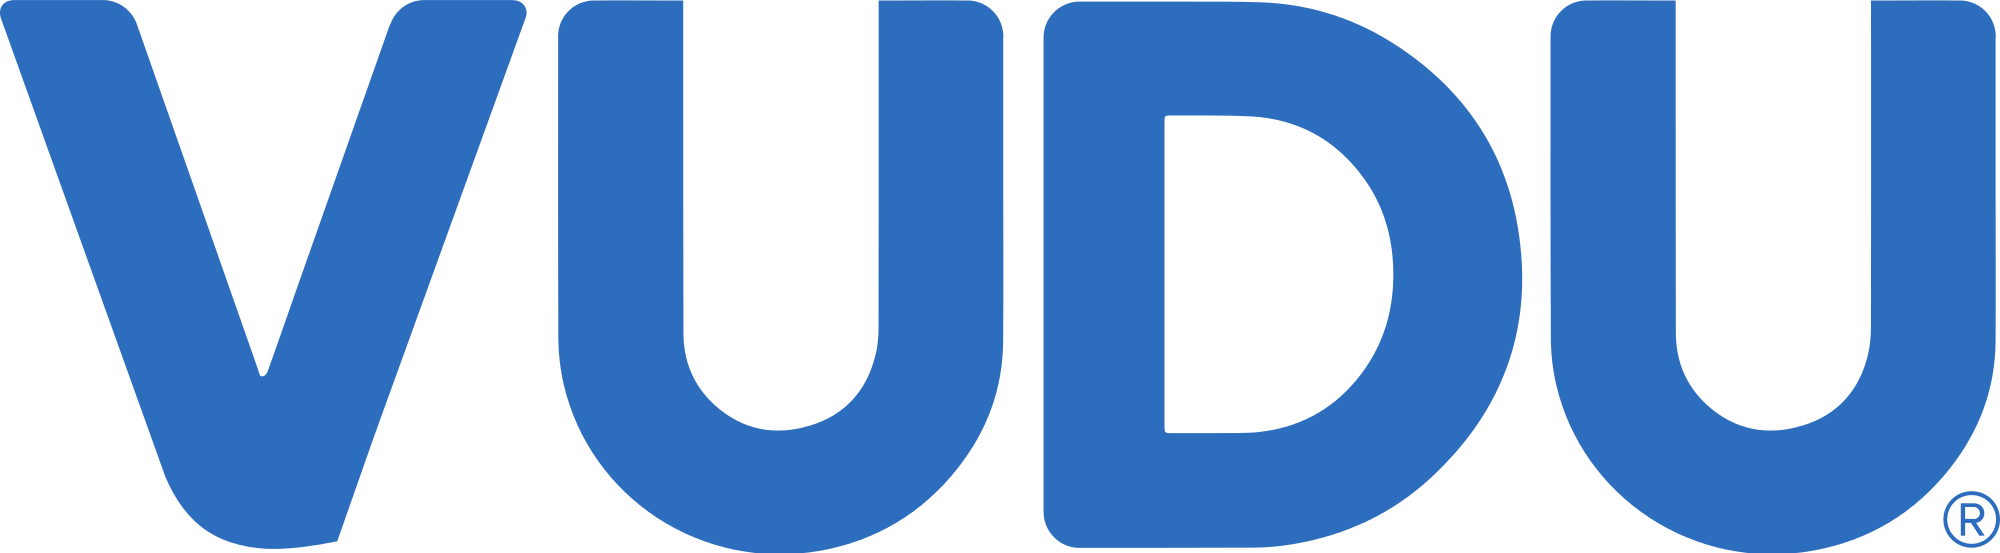 VUDU logo EMERSON HEIGHTS